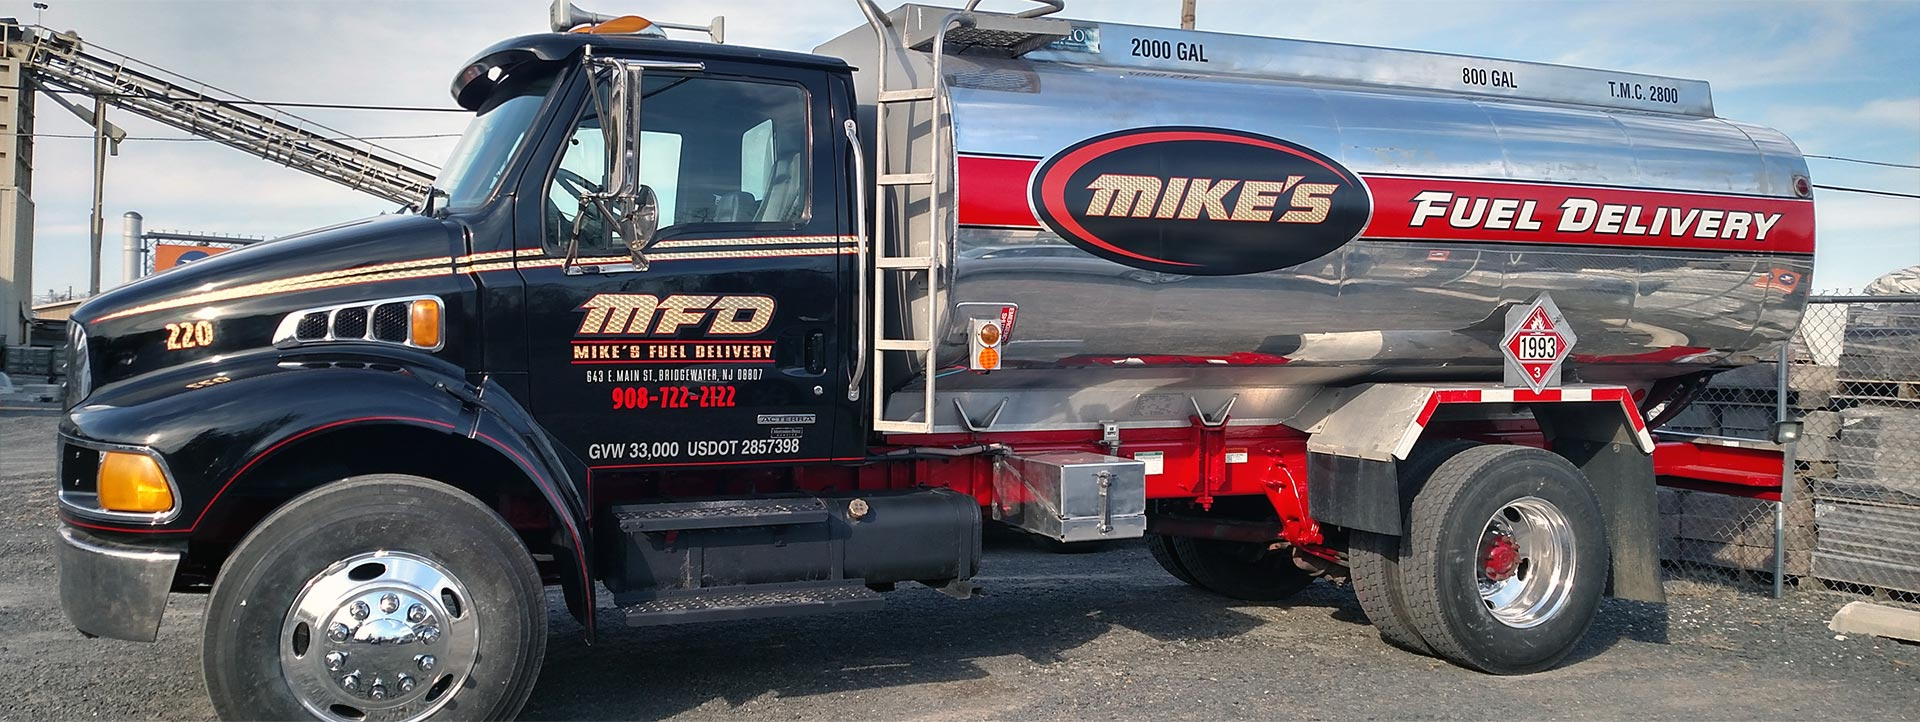 Mike's Fuel Delivery Inc. offers 24/7 emergency fuel delivery services as well as scheduled fuel deliveries to ensure your business is performing optimally.